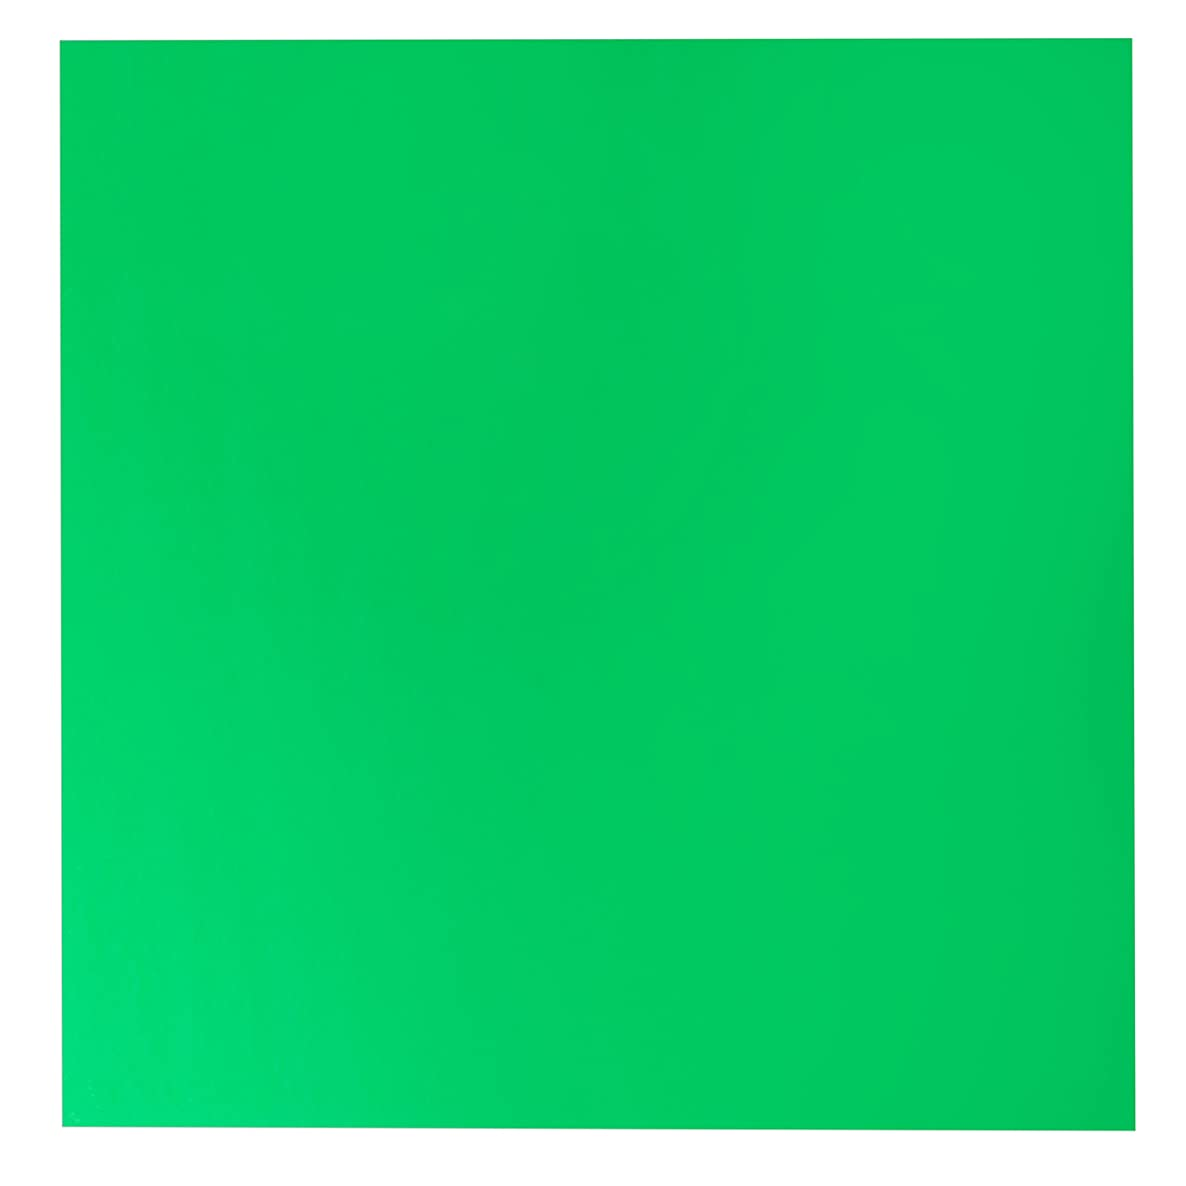 American Crafts Bazzill Basics Plastic Embossing Paper 15 Pack of 12 x 12 Inch Shamrock